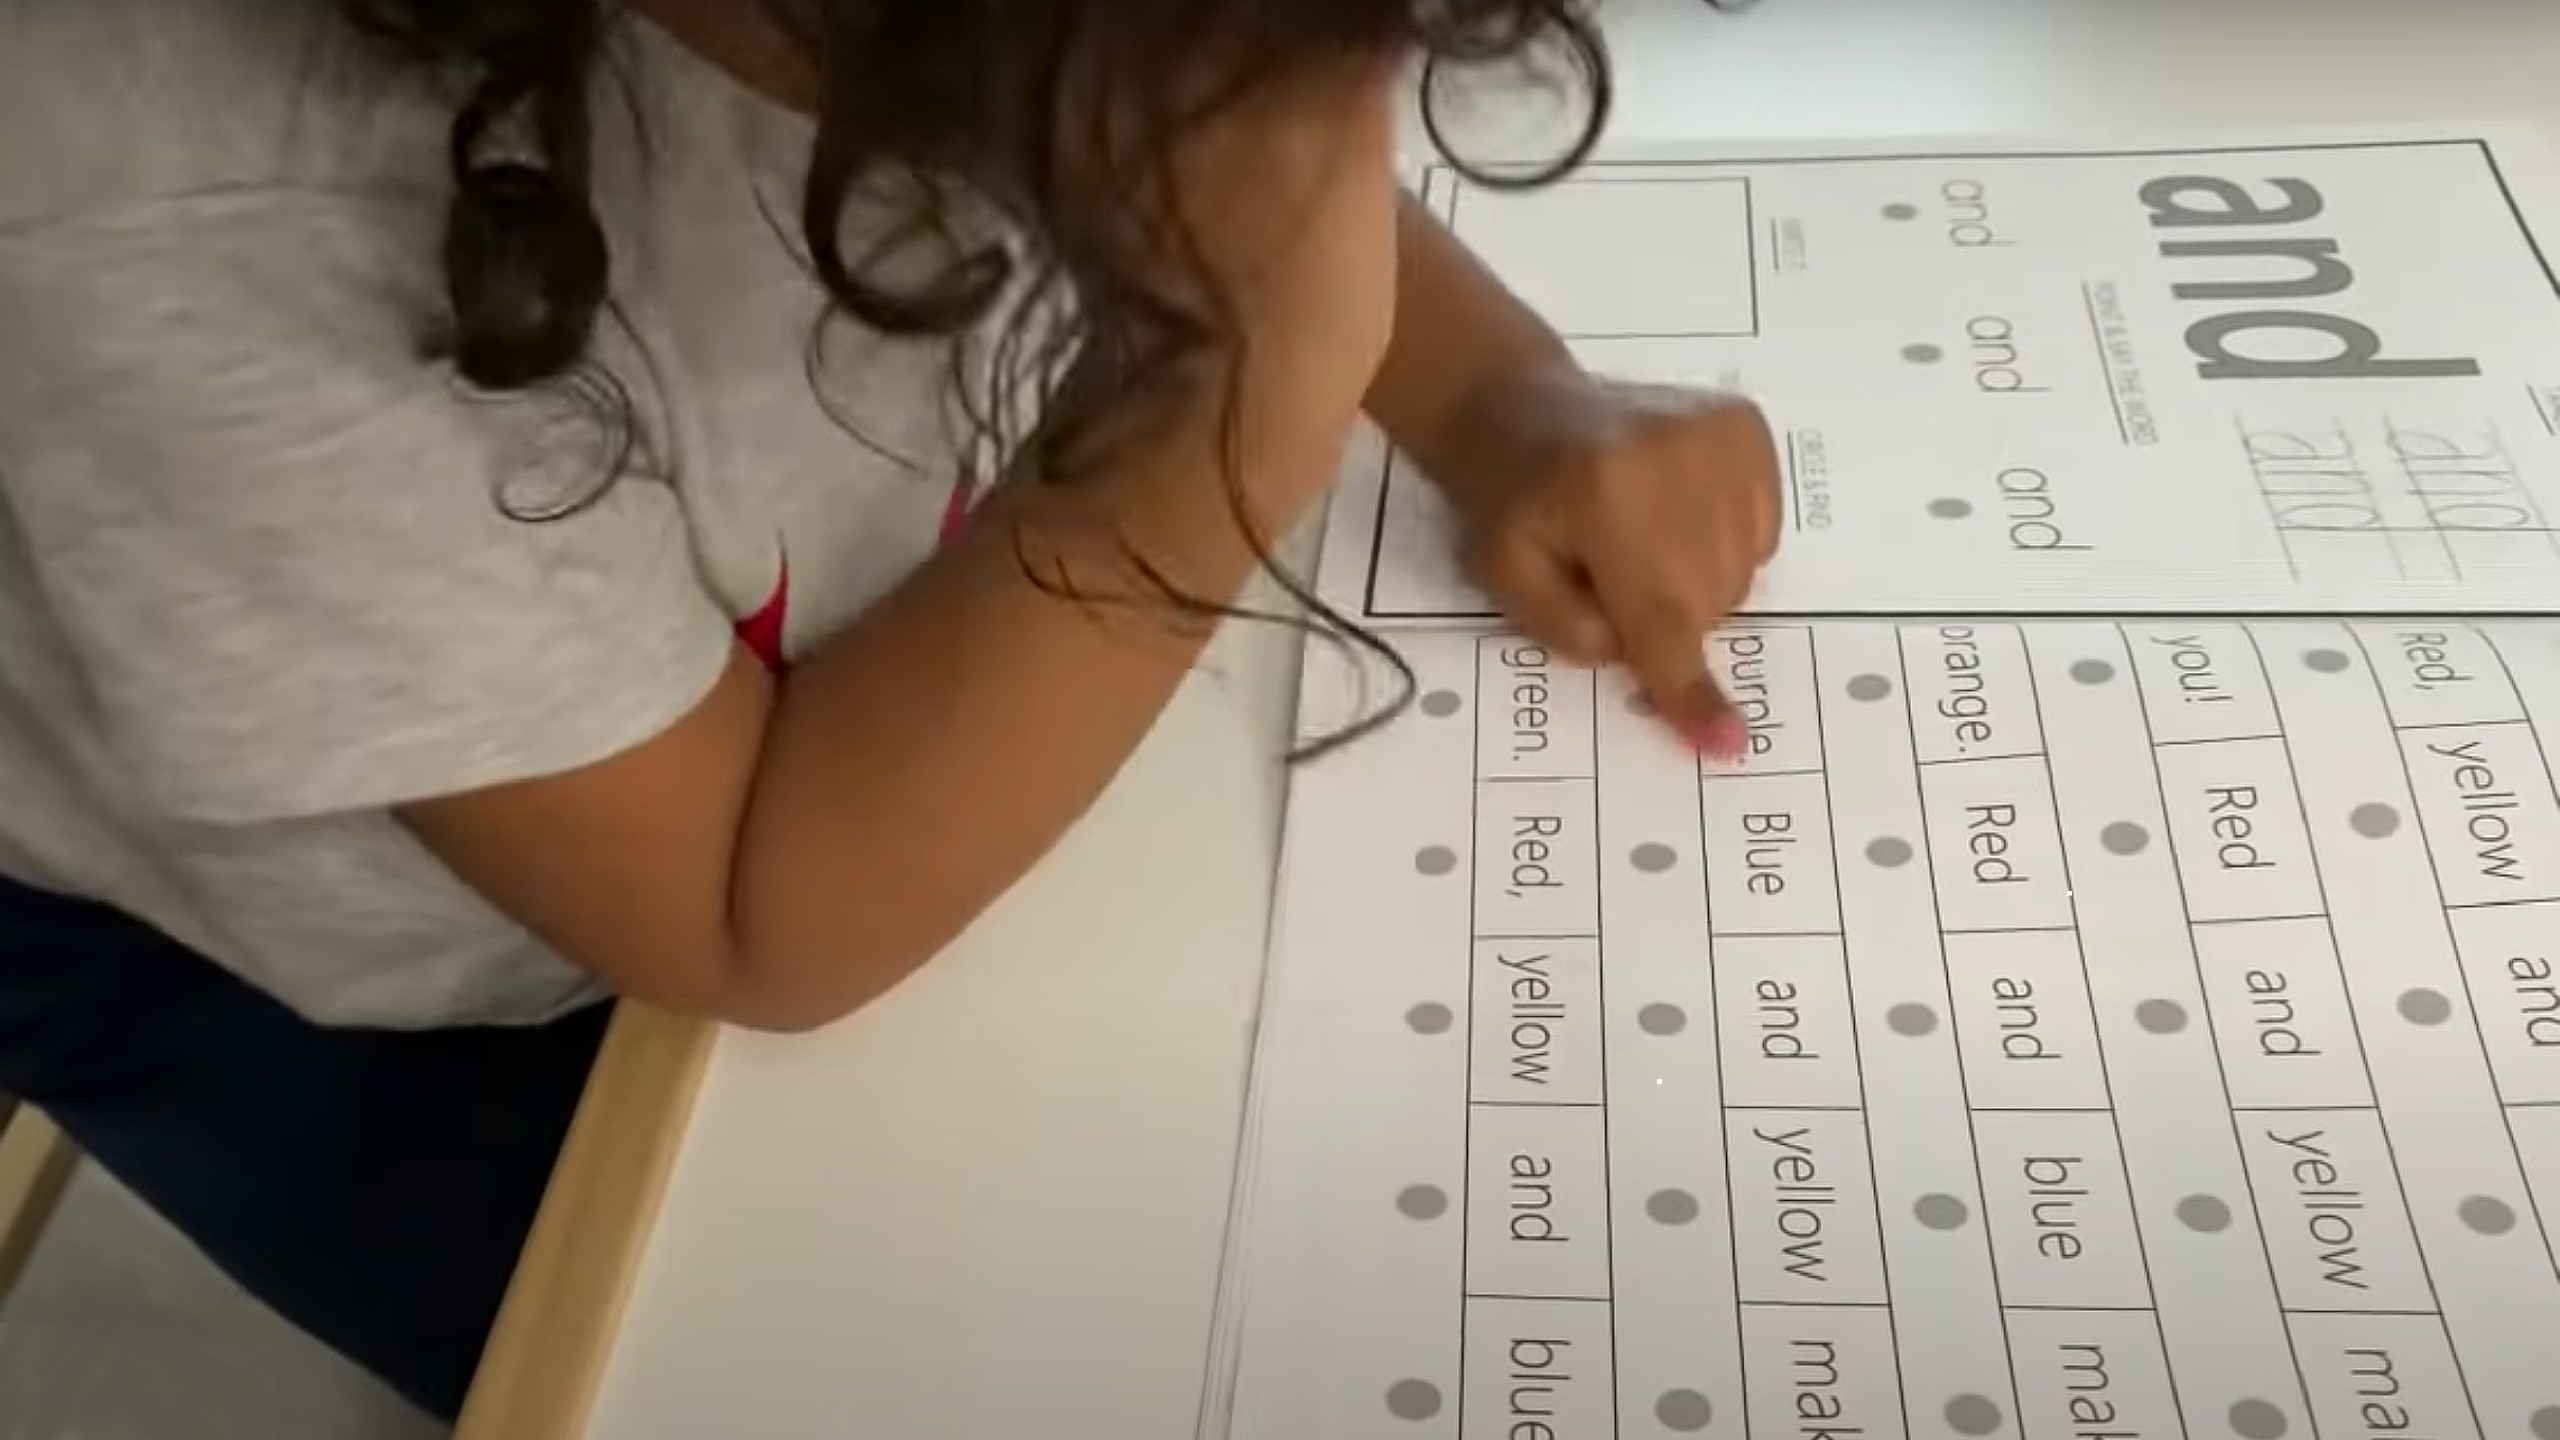 2-year-old genius accepted into Mensa